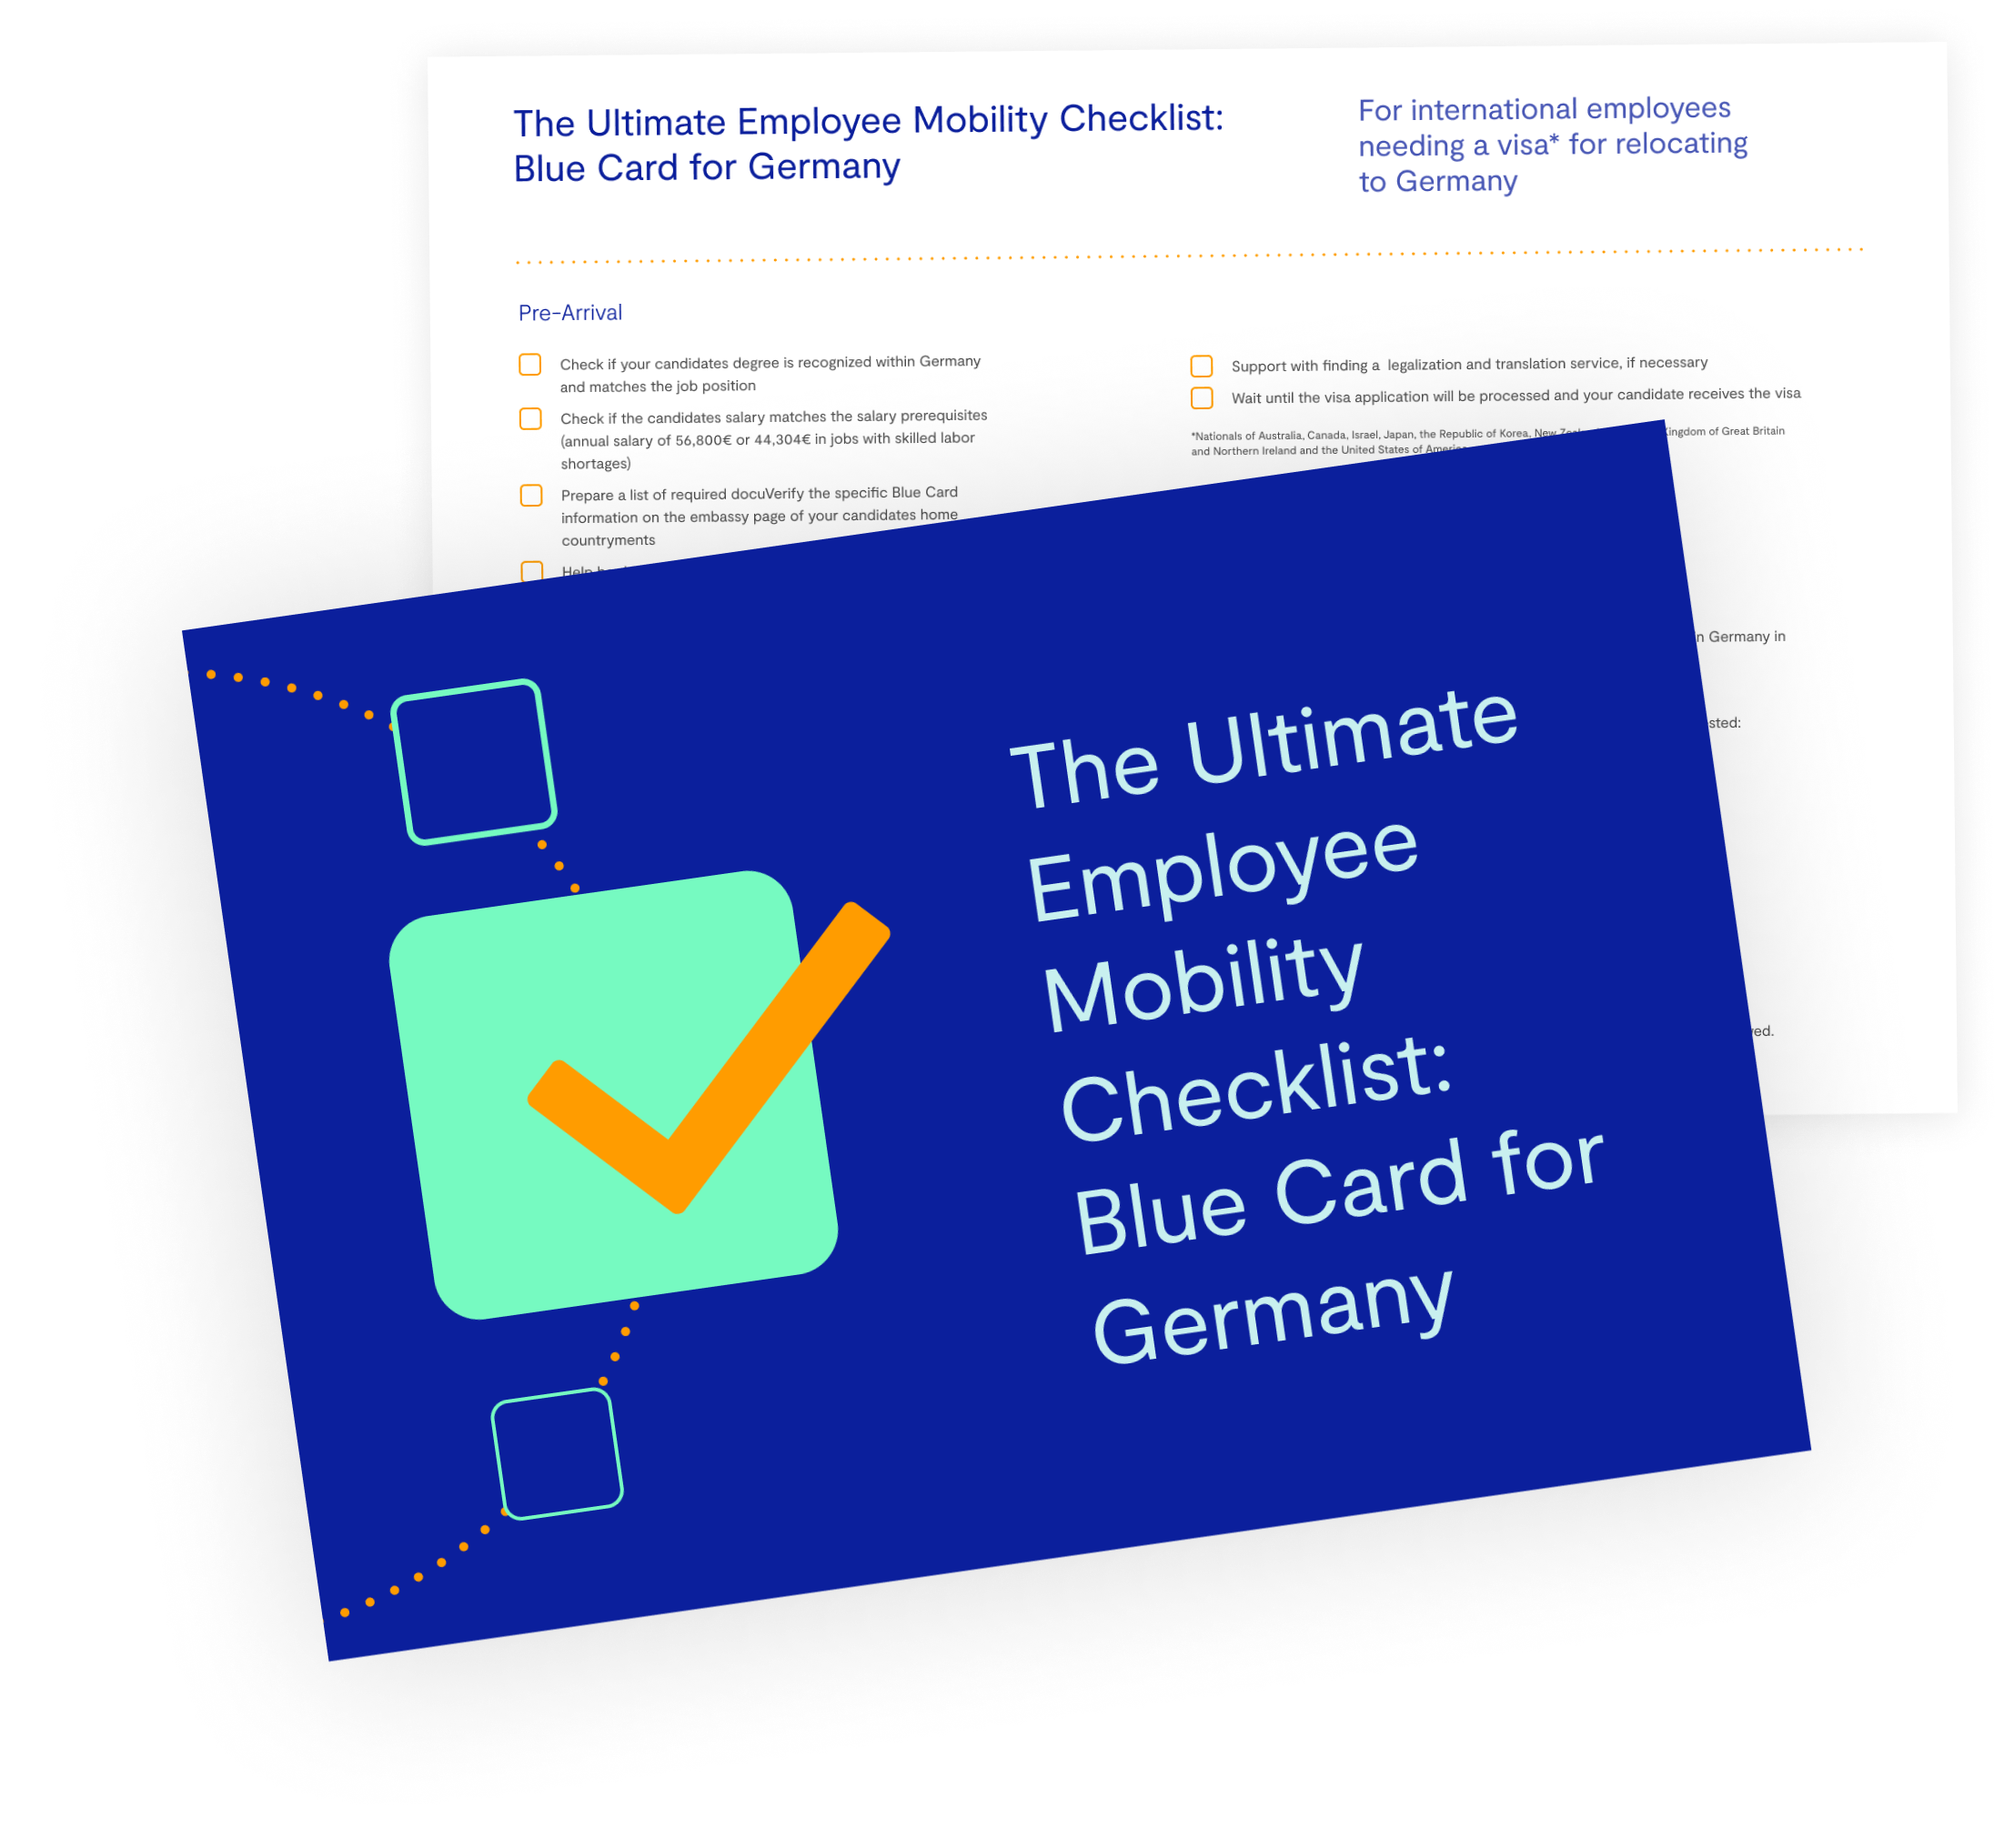 The Ultimate Employee Mobility Checklist: EU Blue Card for Germany